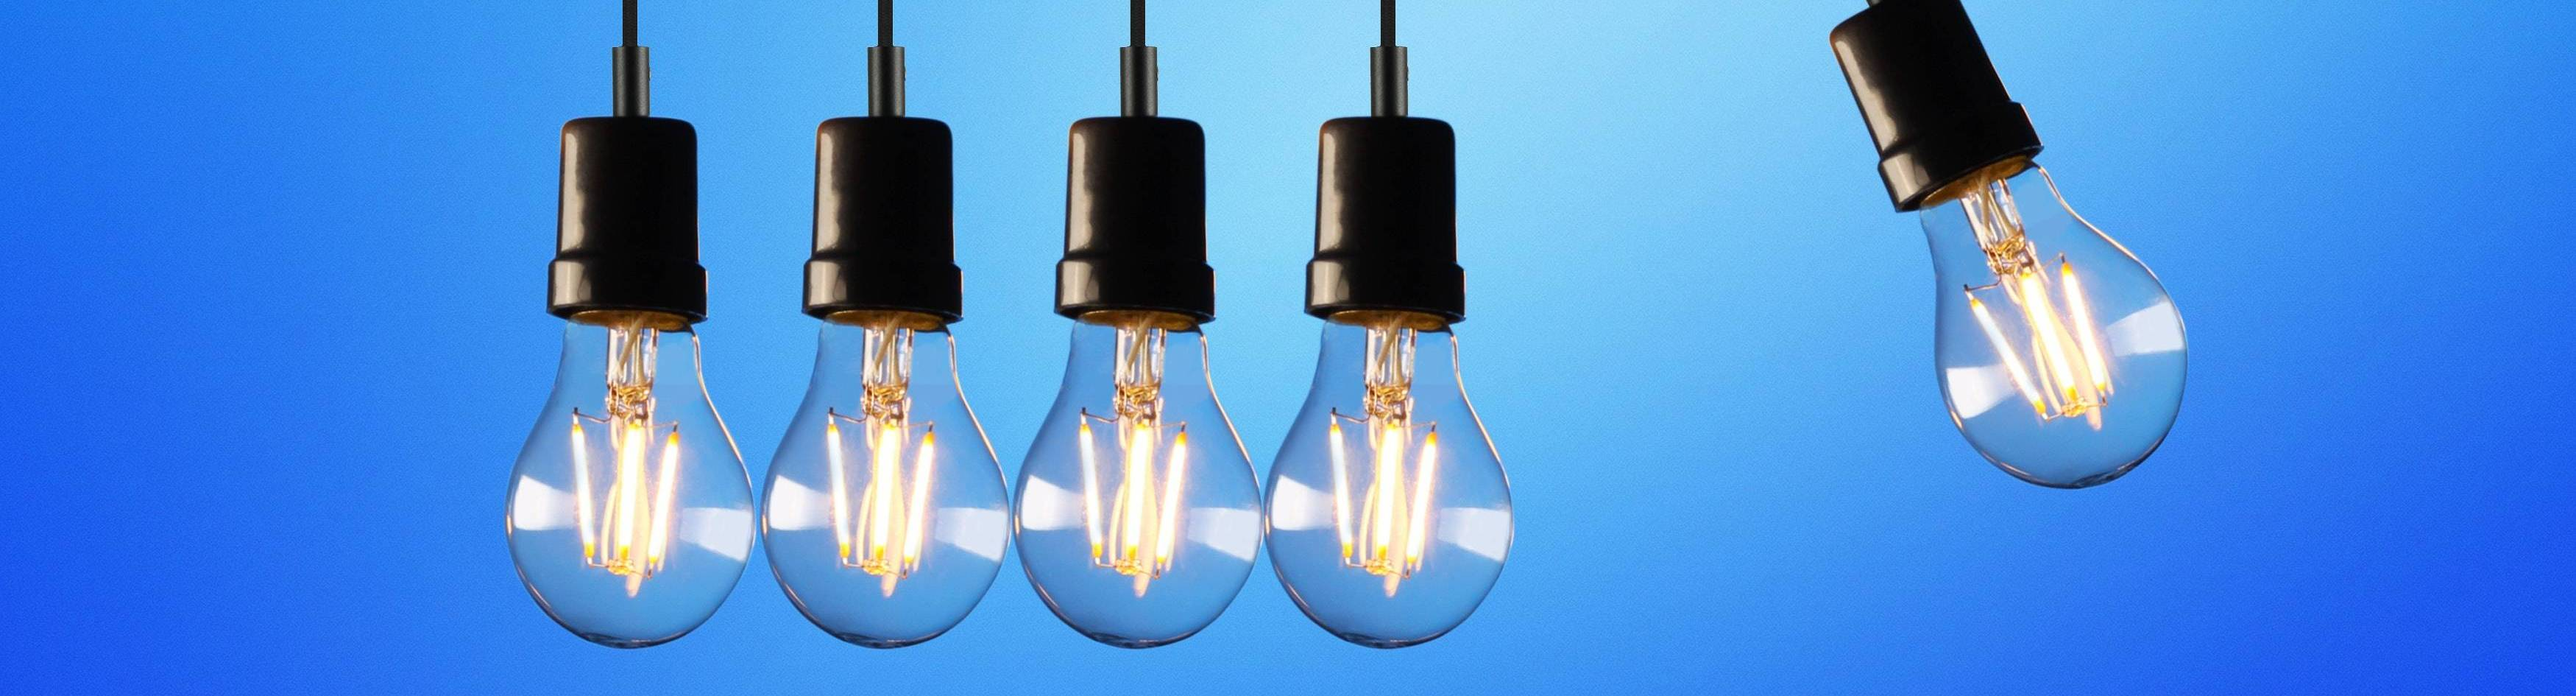 How Energy Efficiency Impacts You, and What You Can Do About It